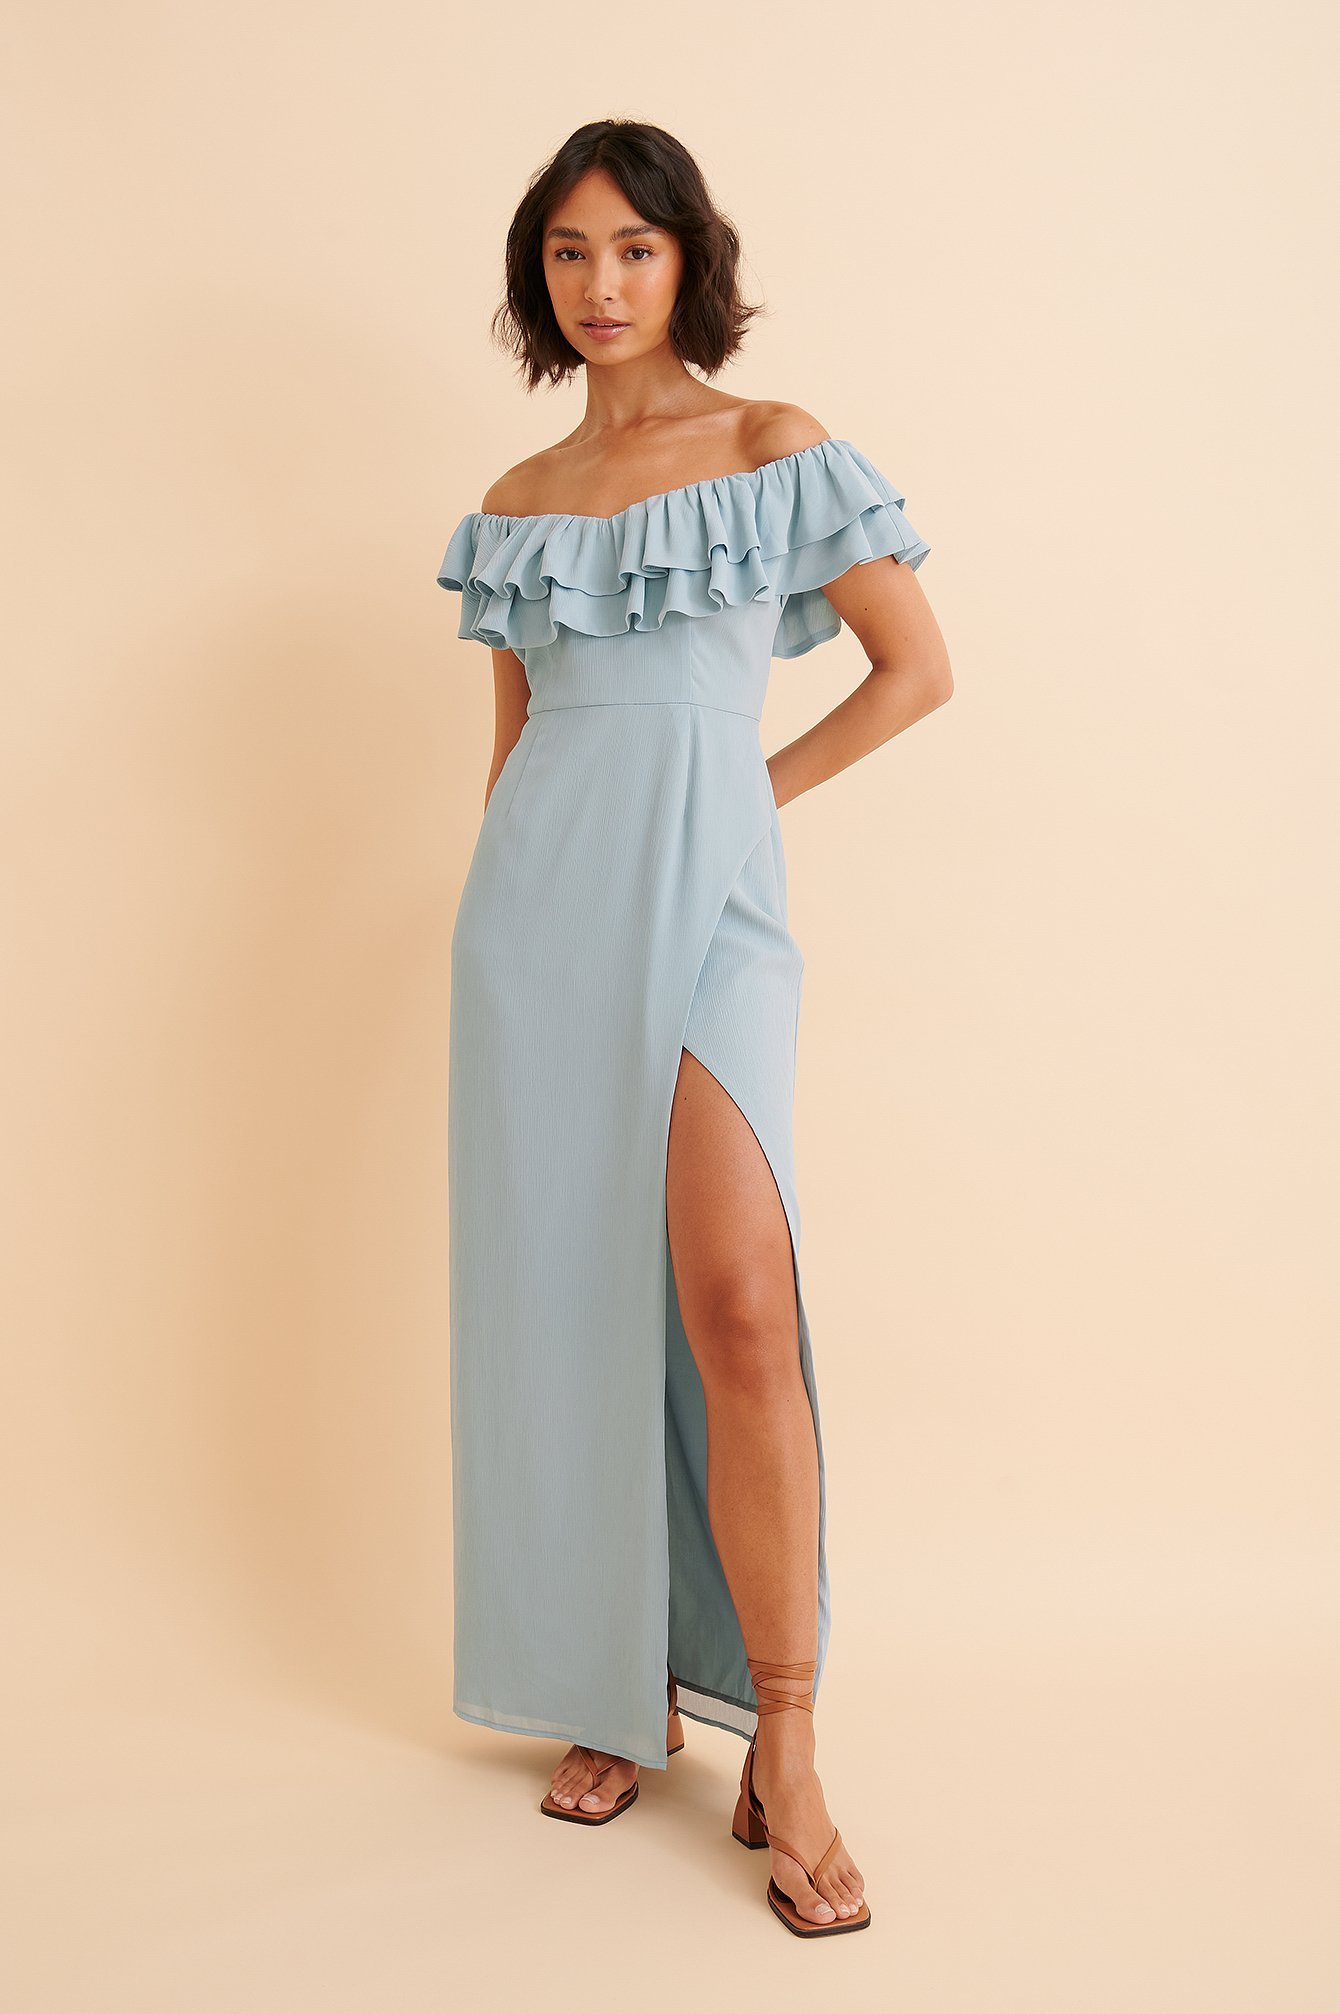 curated styles -  Maxikleid Ohne Schultern - Blue